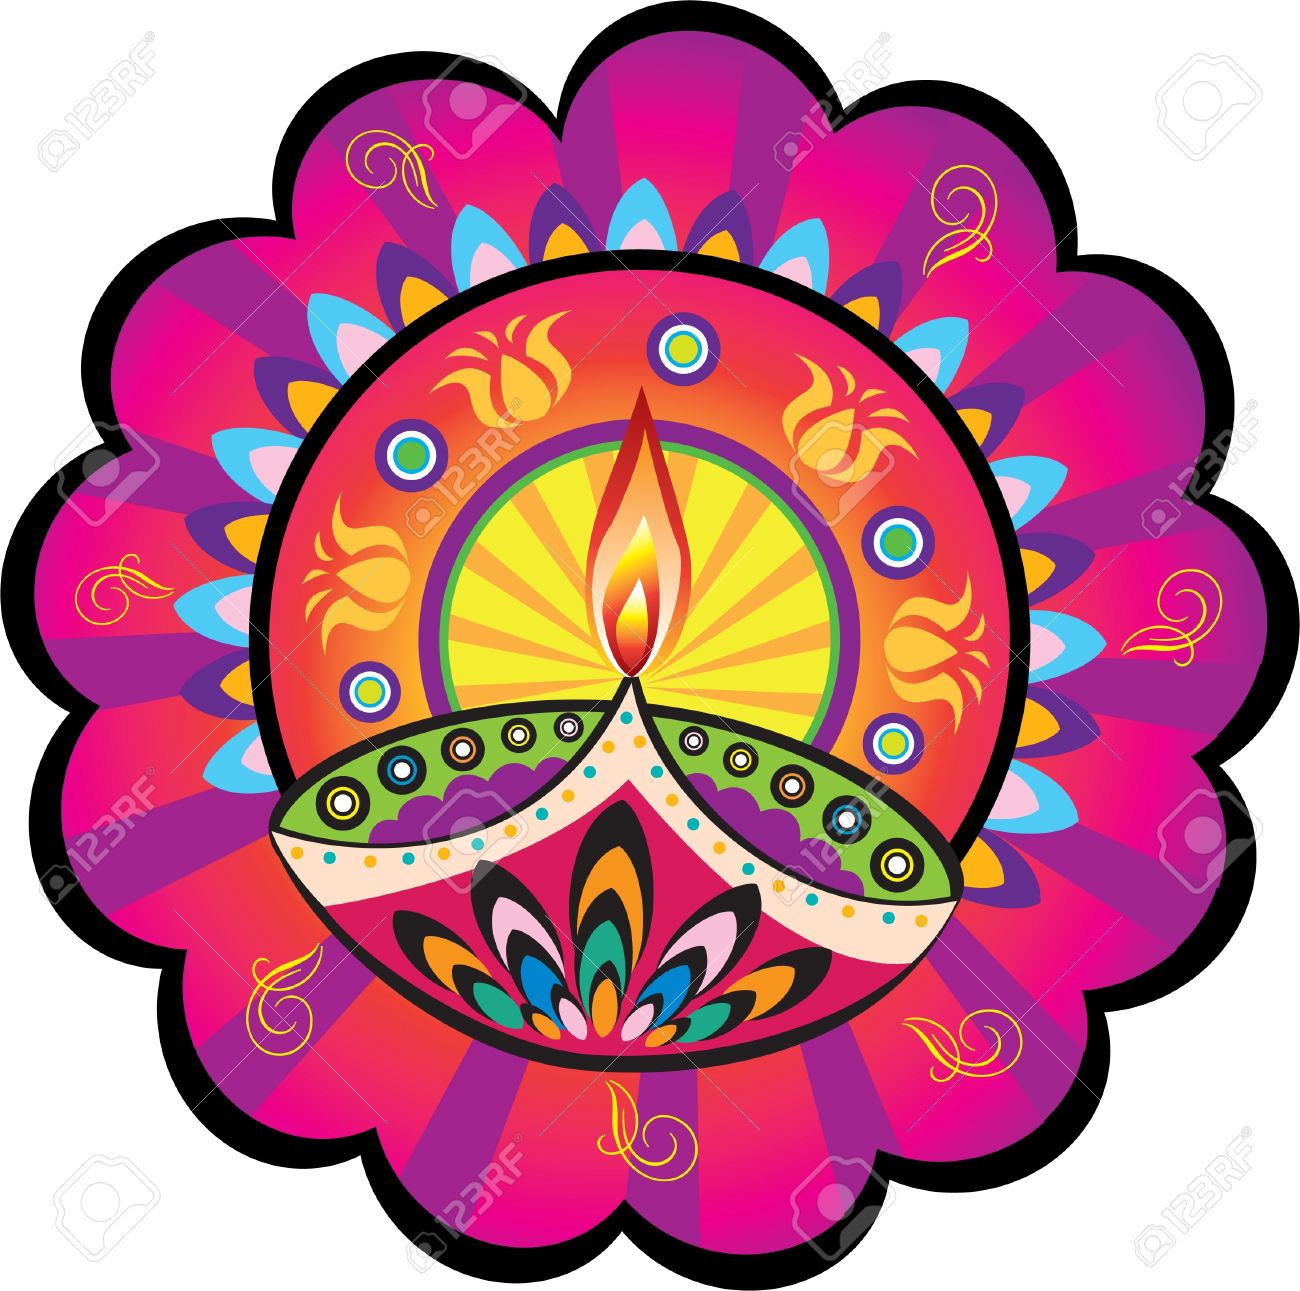 Rangoli clipart hd graphic stock Collection of Rangoli clipart | Free download best Rangoli ... graphic stock